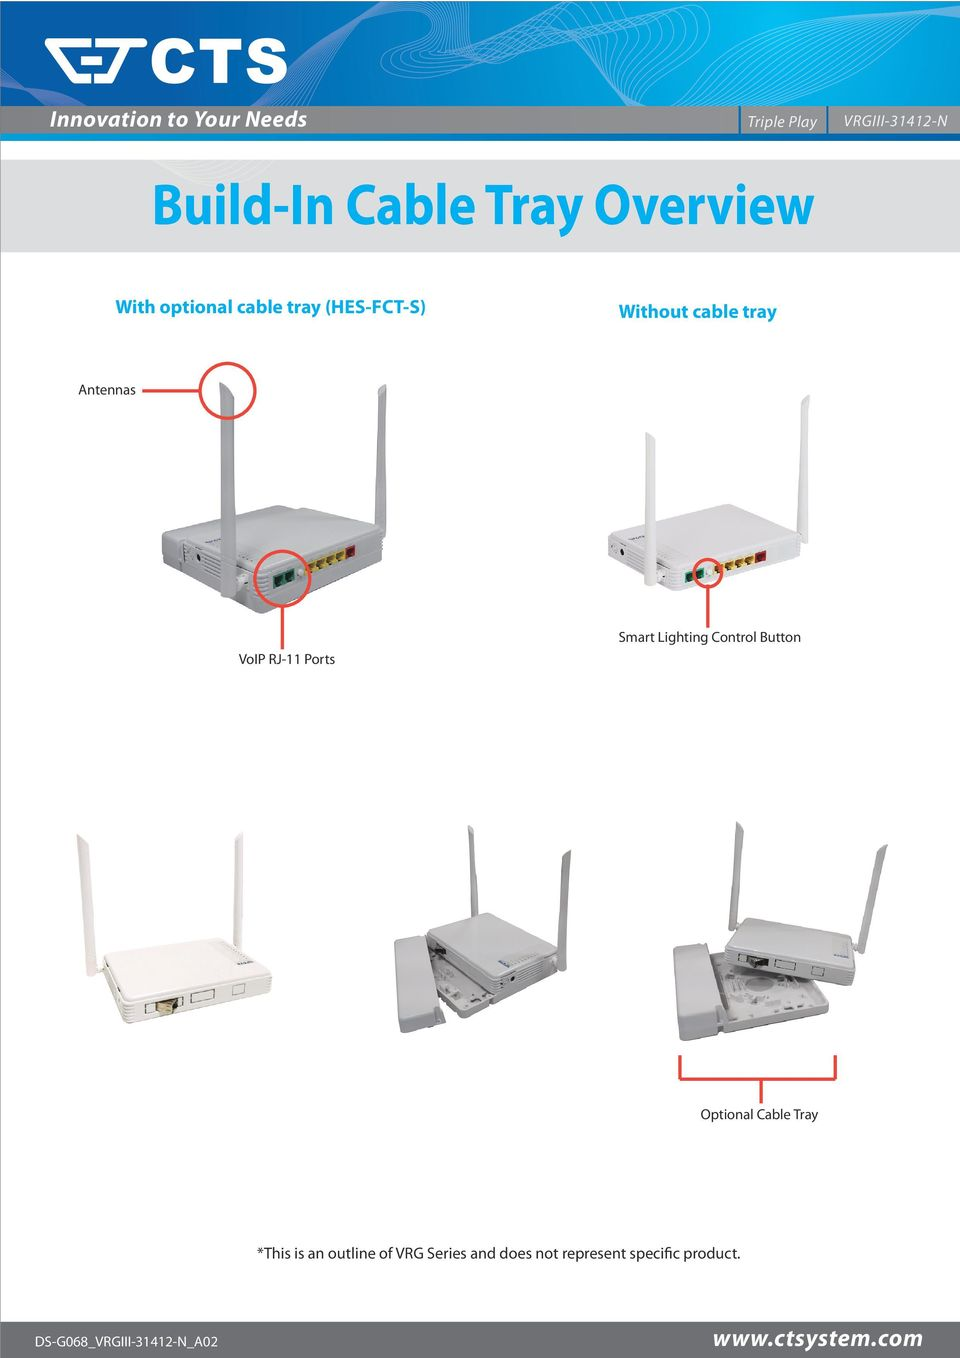 Smart Lighting Control Button Optional Cable Tray *This is